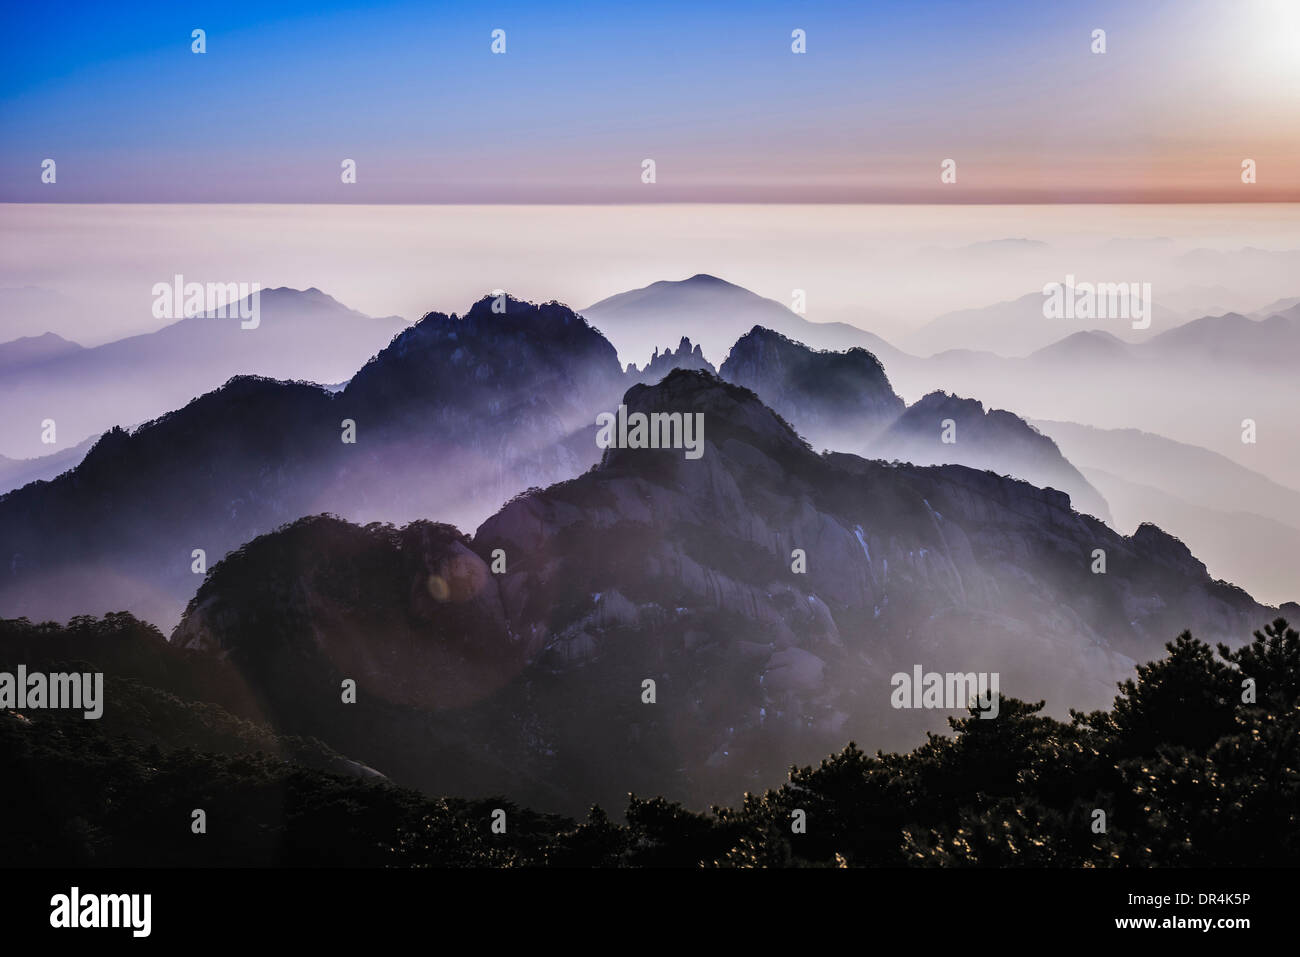 Fog rolling over rocky mountains, Huangshan, Anhui, China - Stock Image